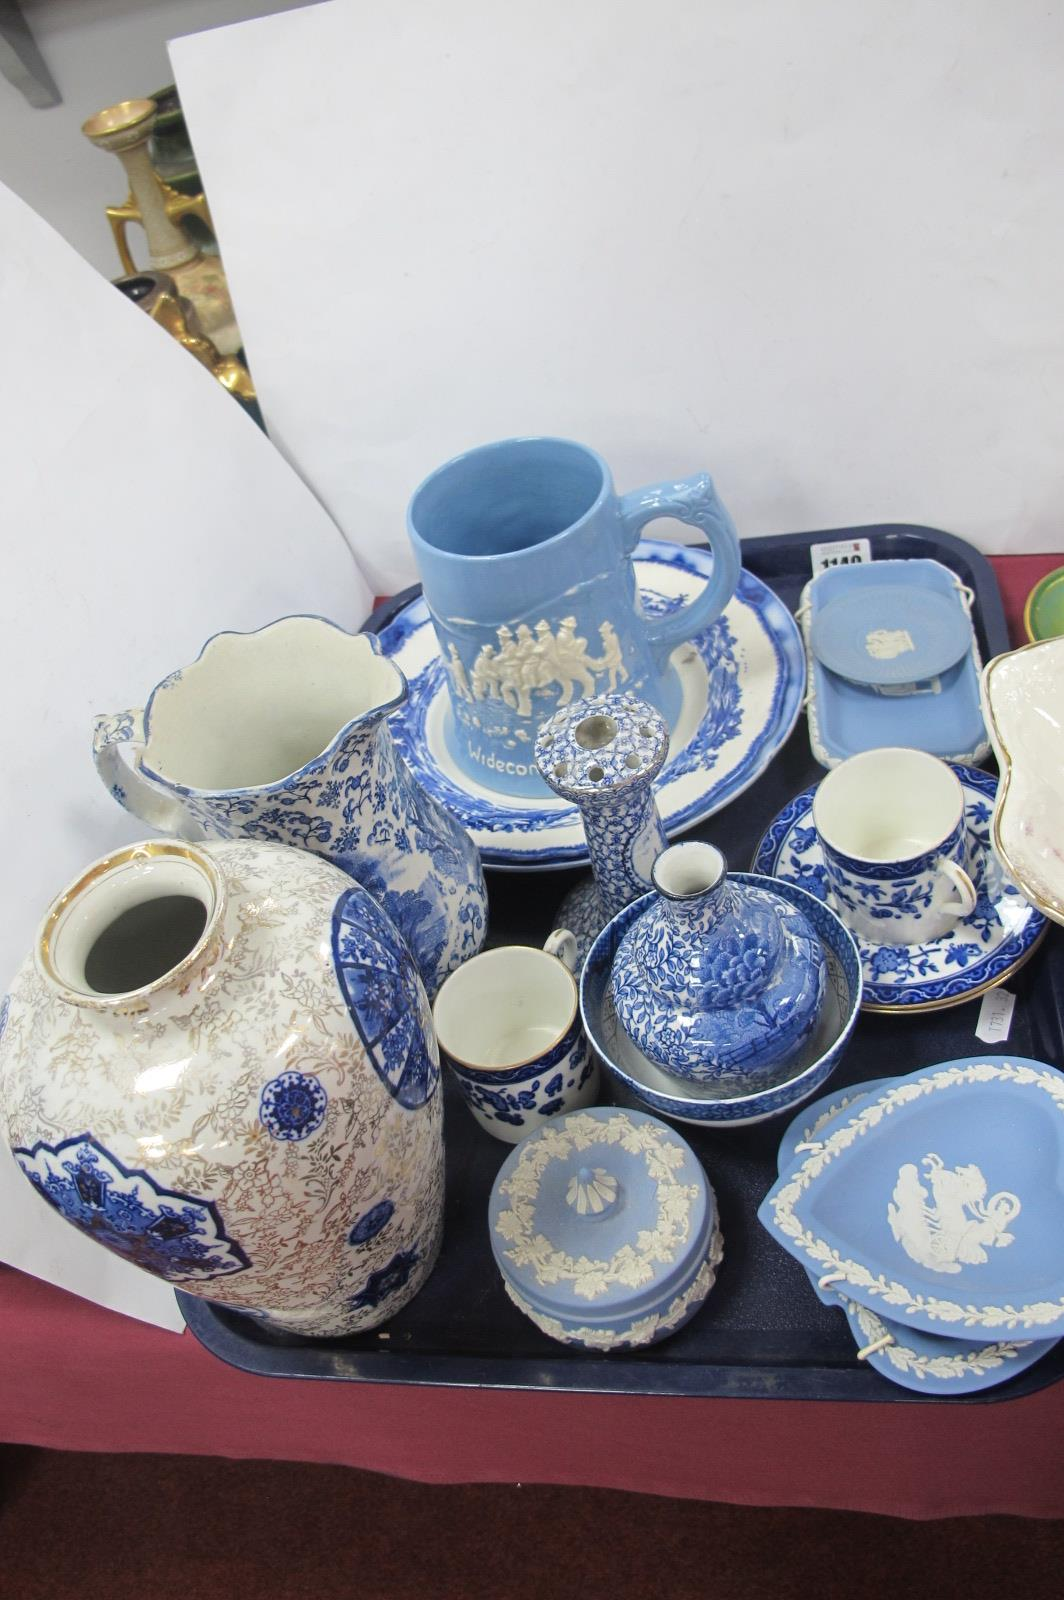 Wedgwood Jasper, Dartmouth Widecombe Fair, Lincoln hat pin stand, other blue and white ceramics:-